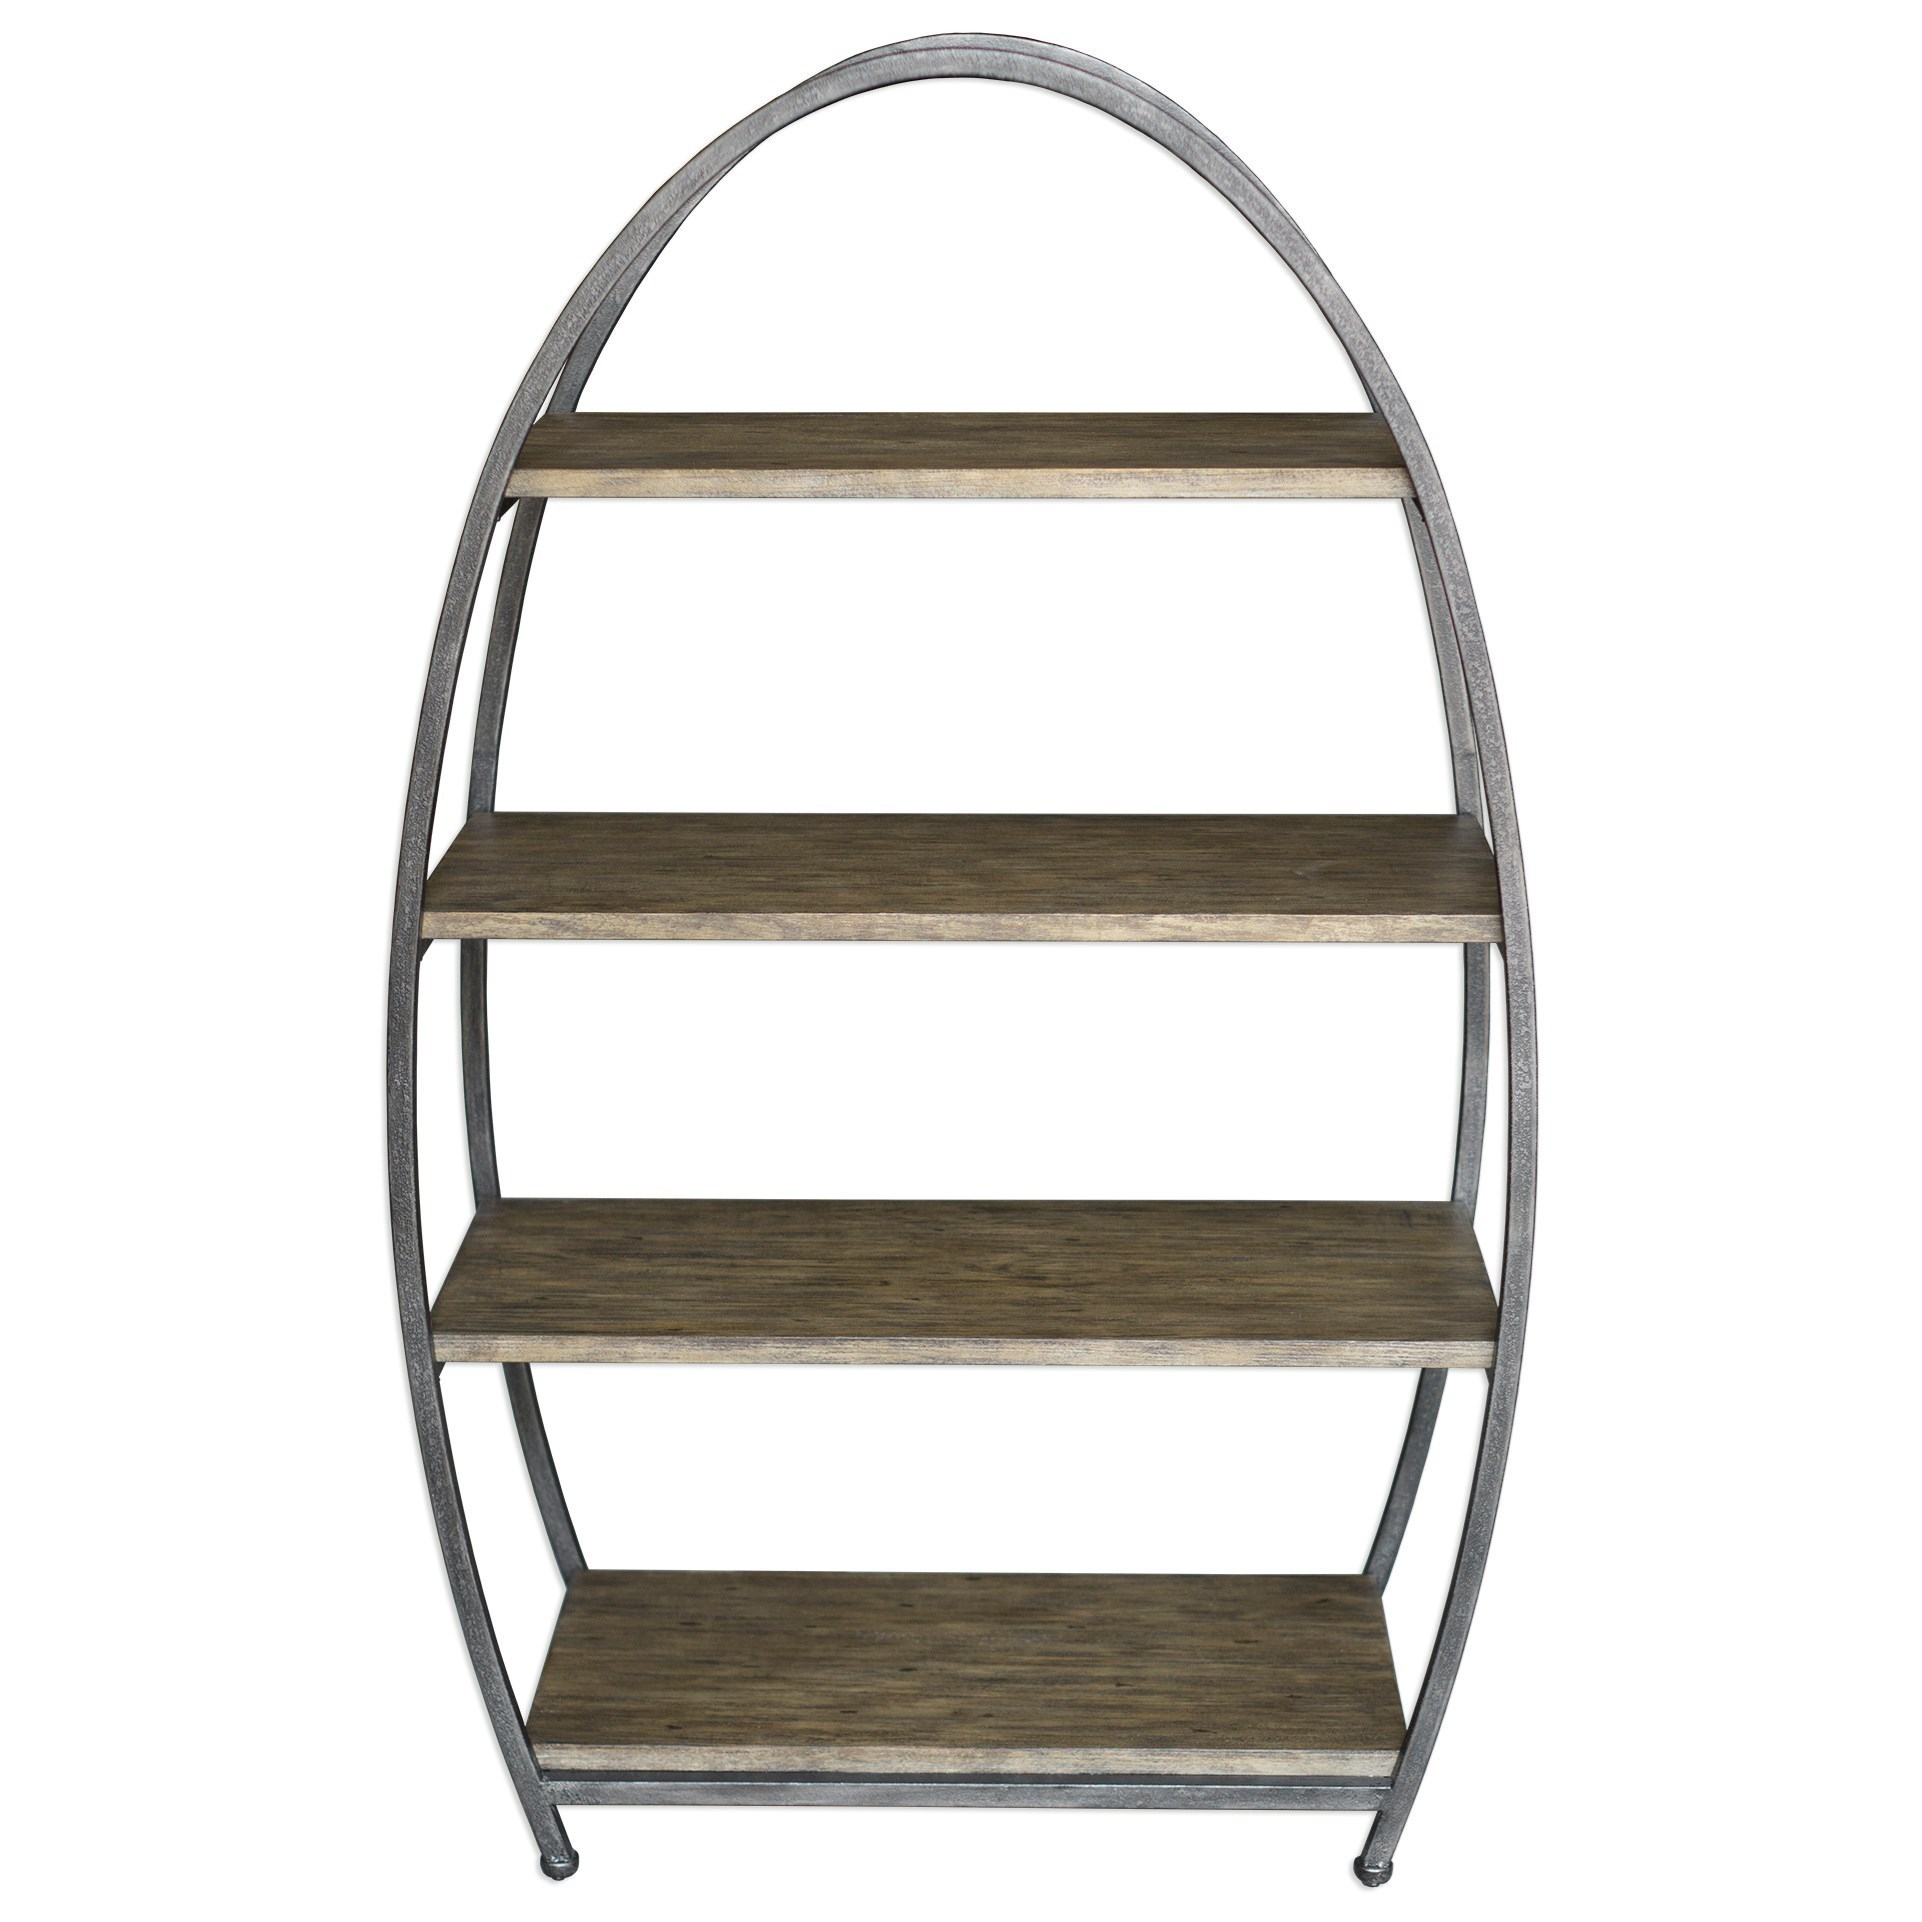 Uttermost Accent Furniture  Matisa Textured Steel Etagere - Item Number: 25939